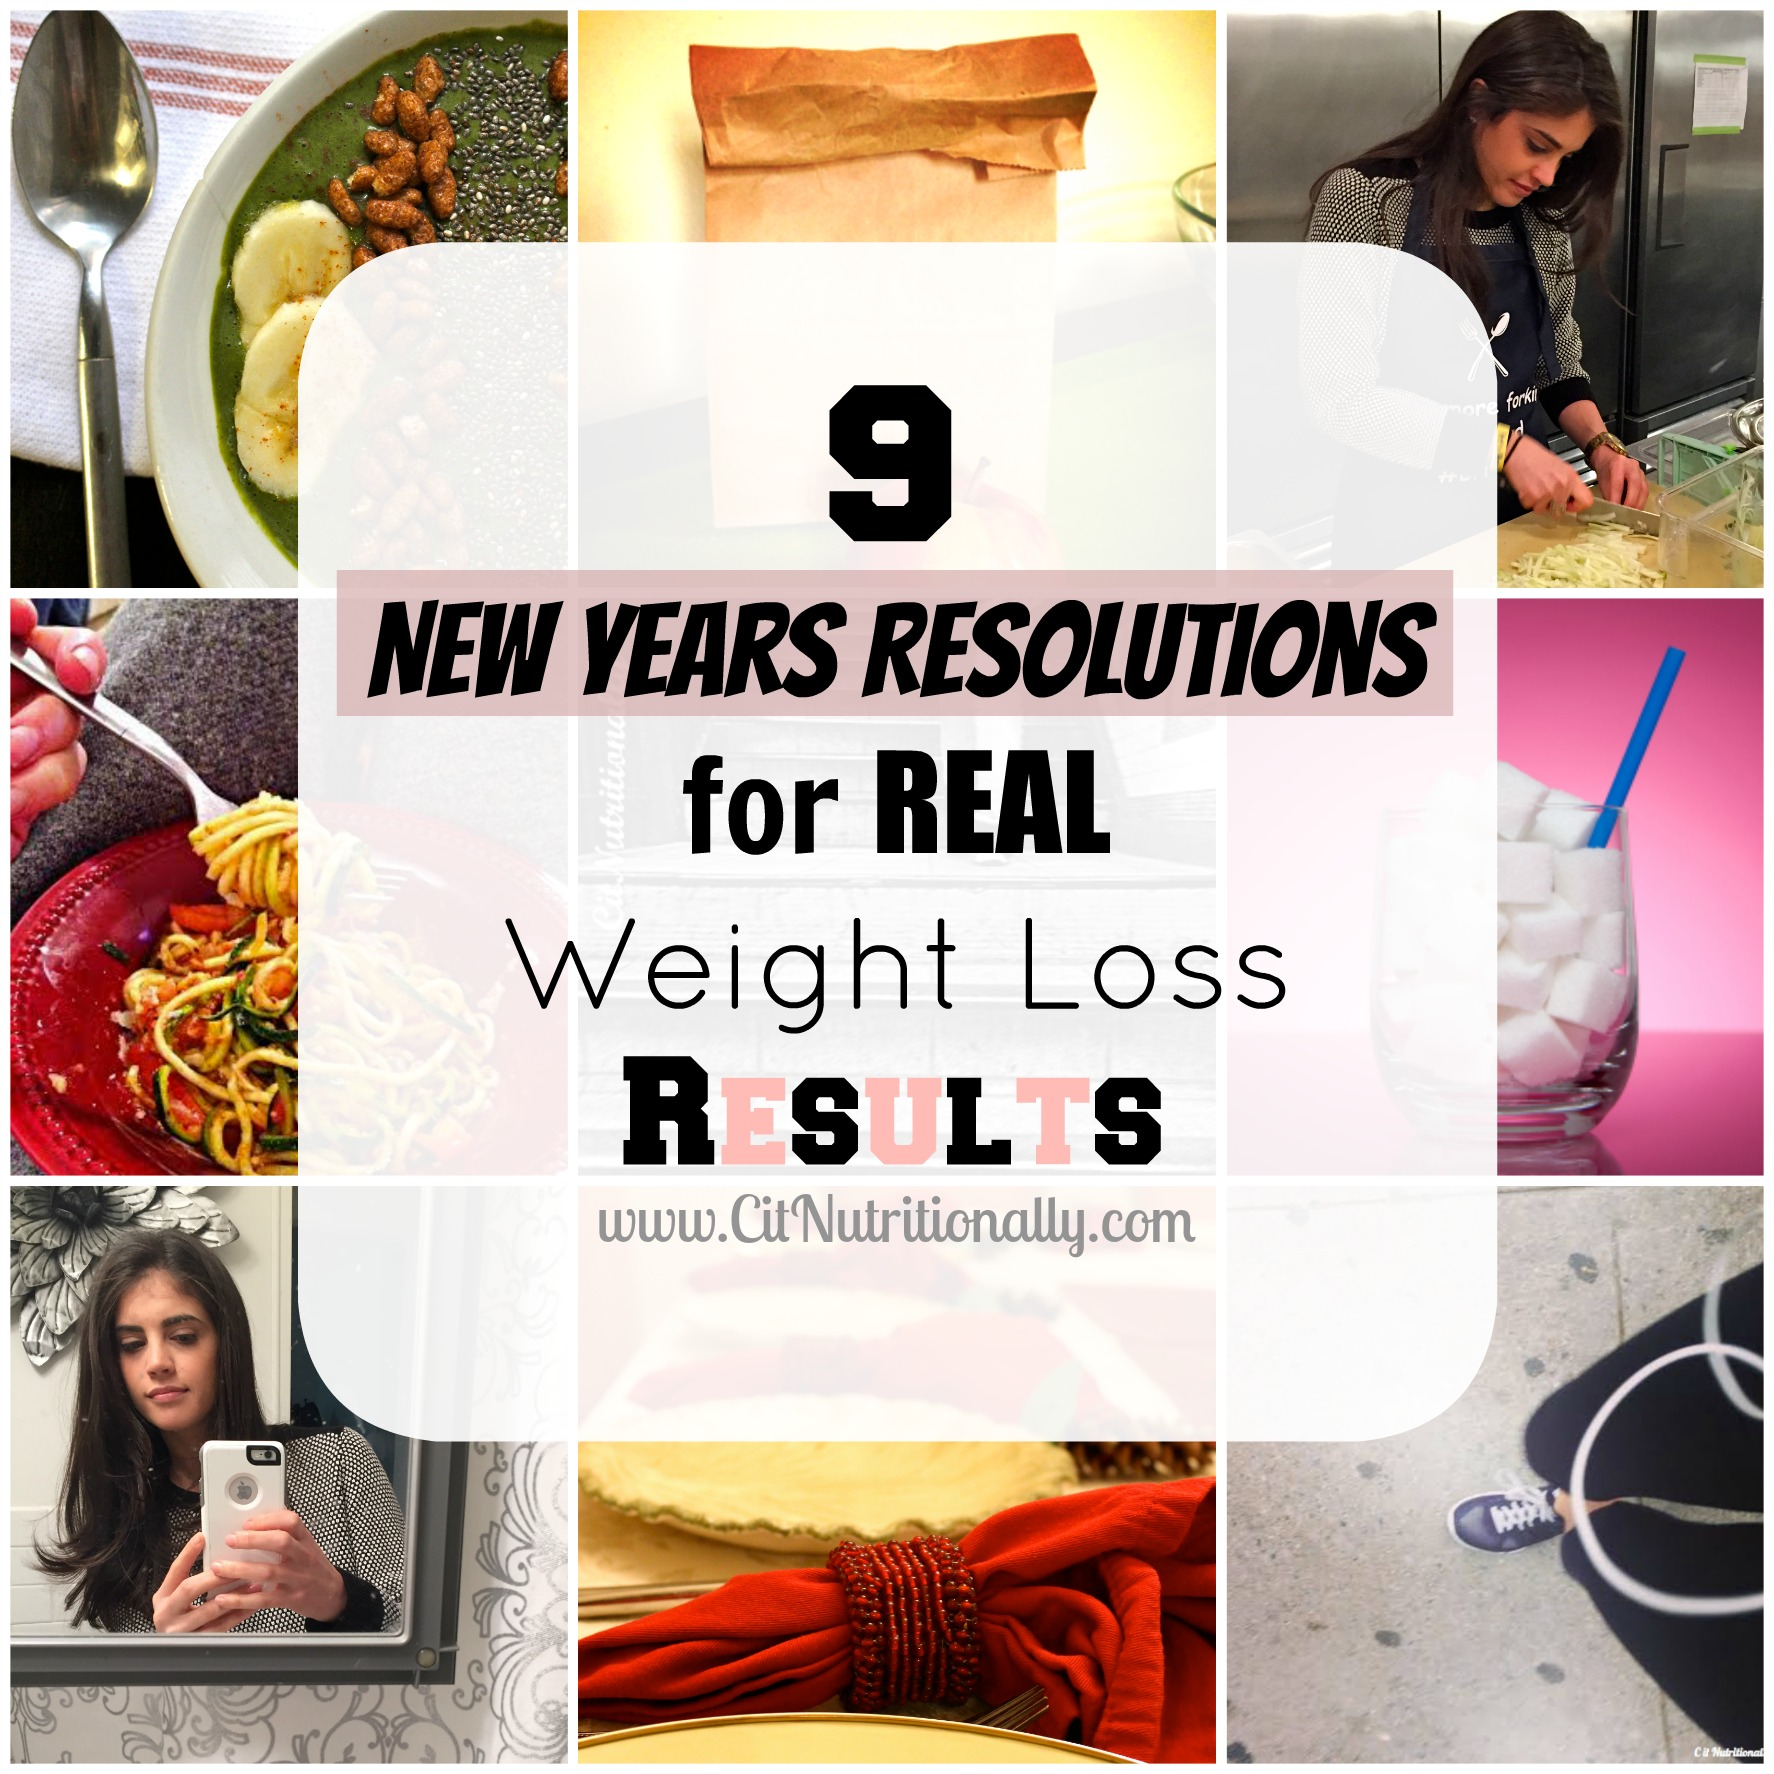 9 New Years Resolutions for Real Weight Loss Results | C it Nutritionally